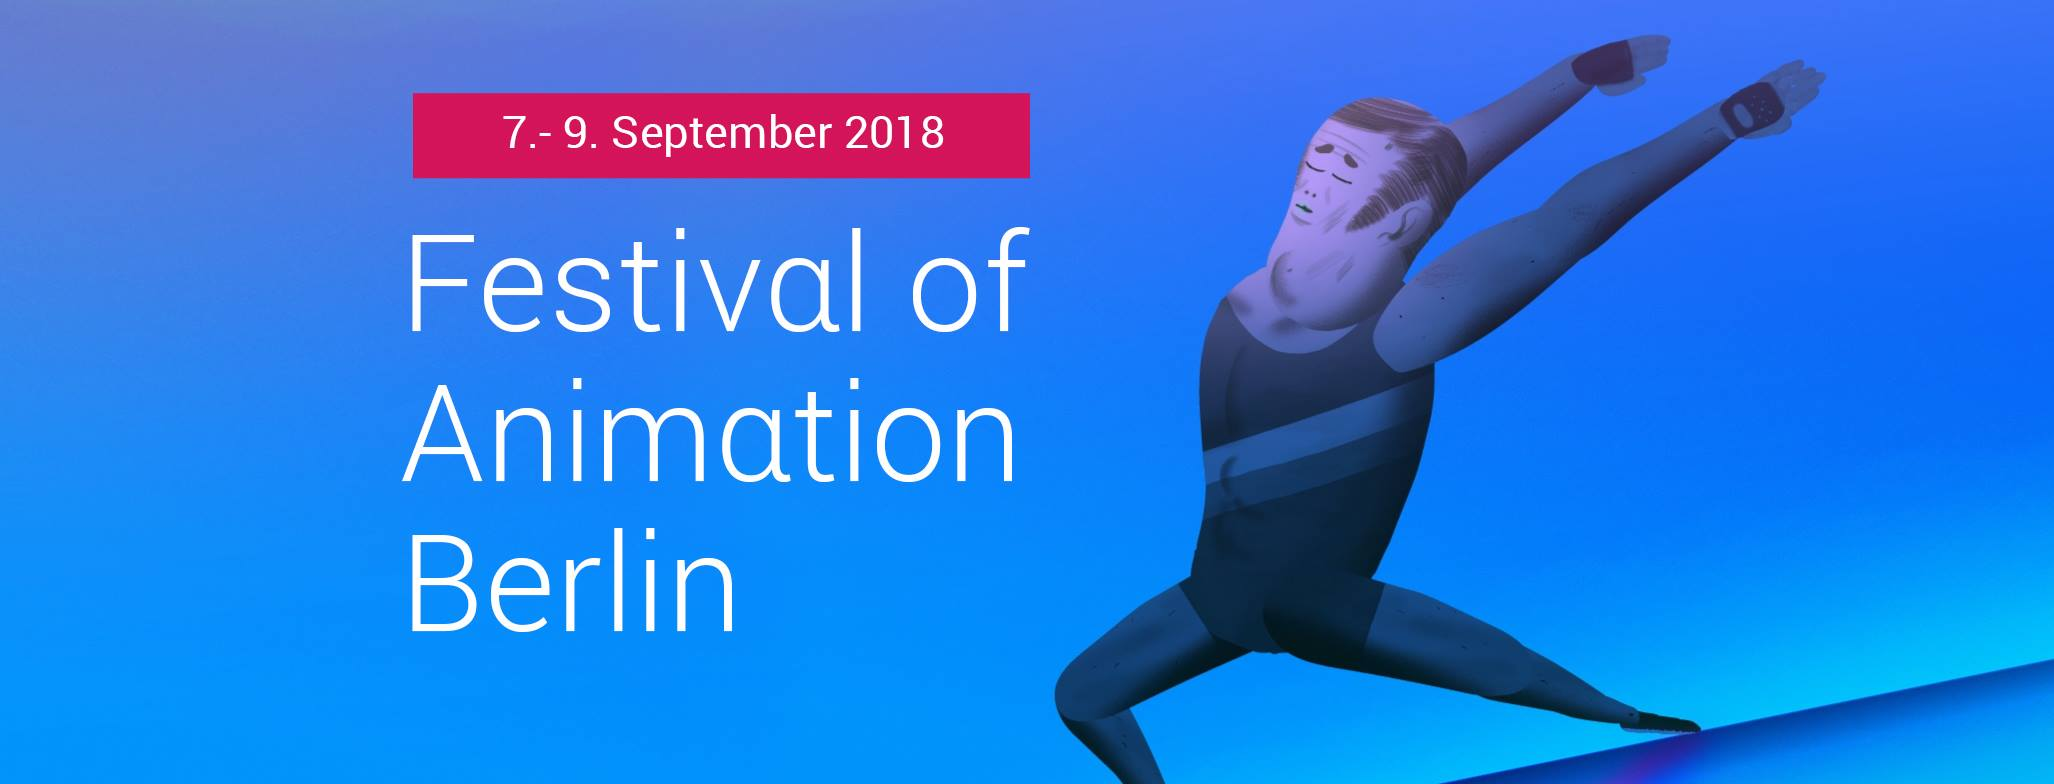 Festival of Animation